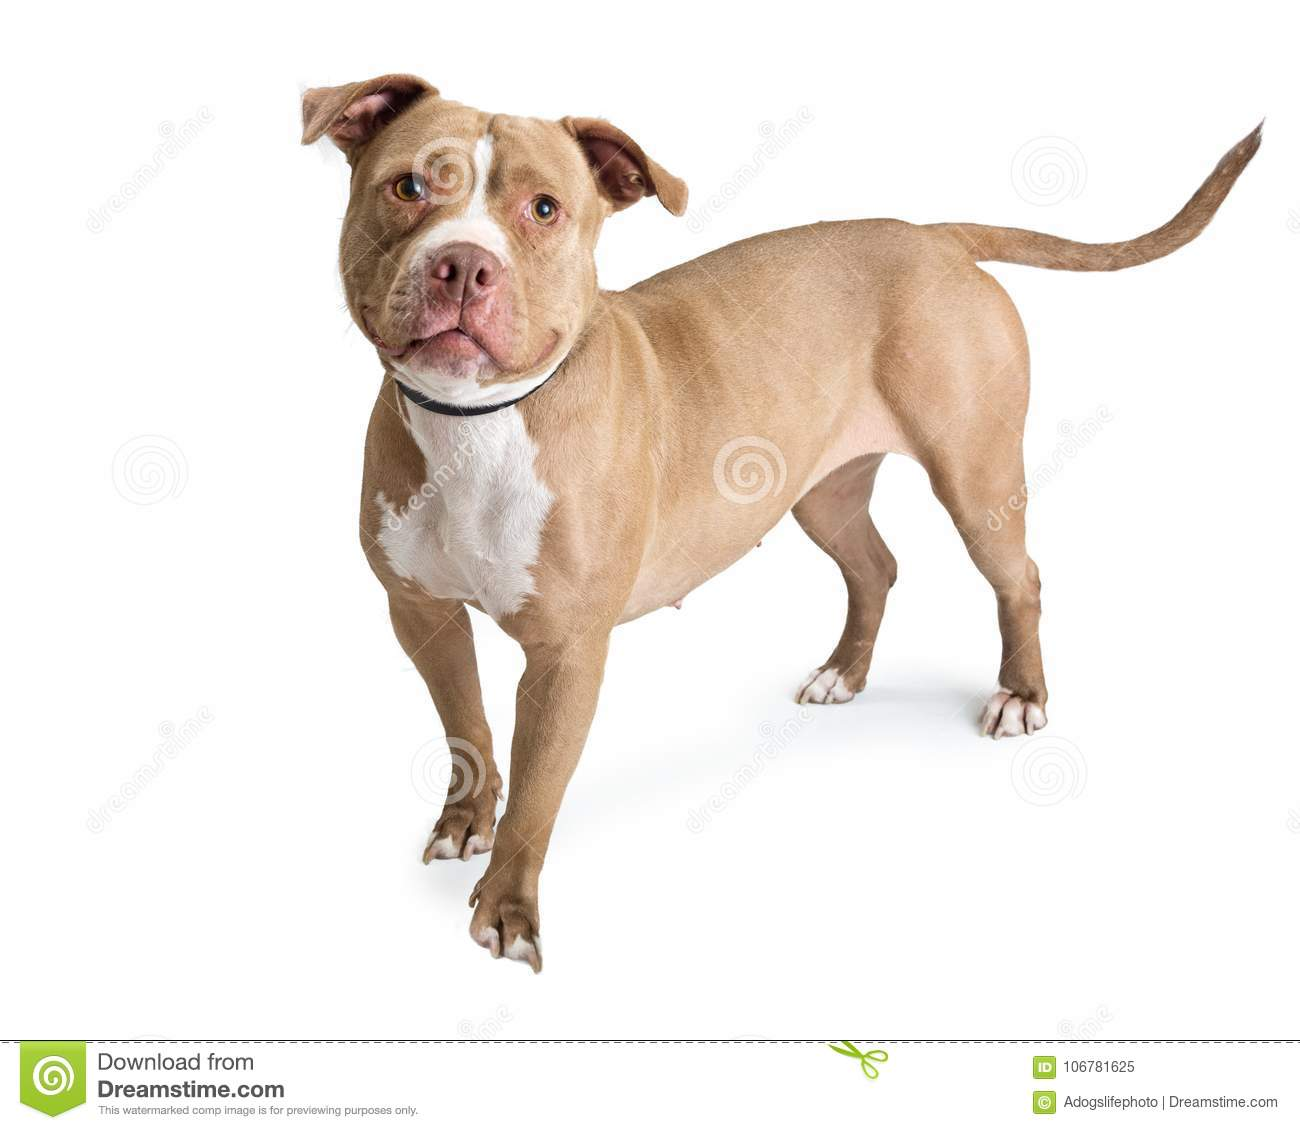 Fawn Pit Bull Dog Standing On White Stock Image - Image of